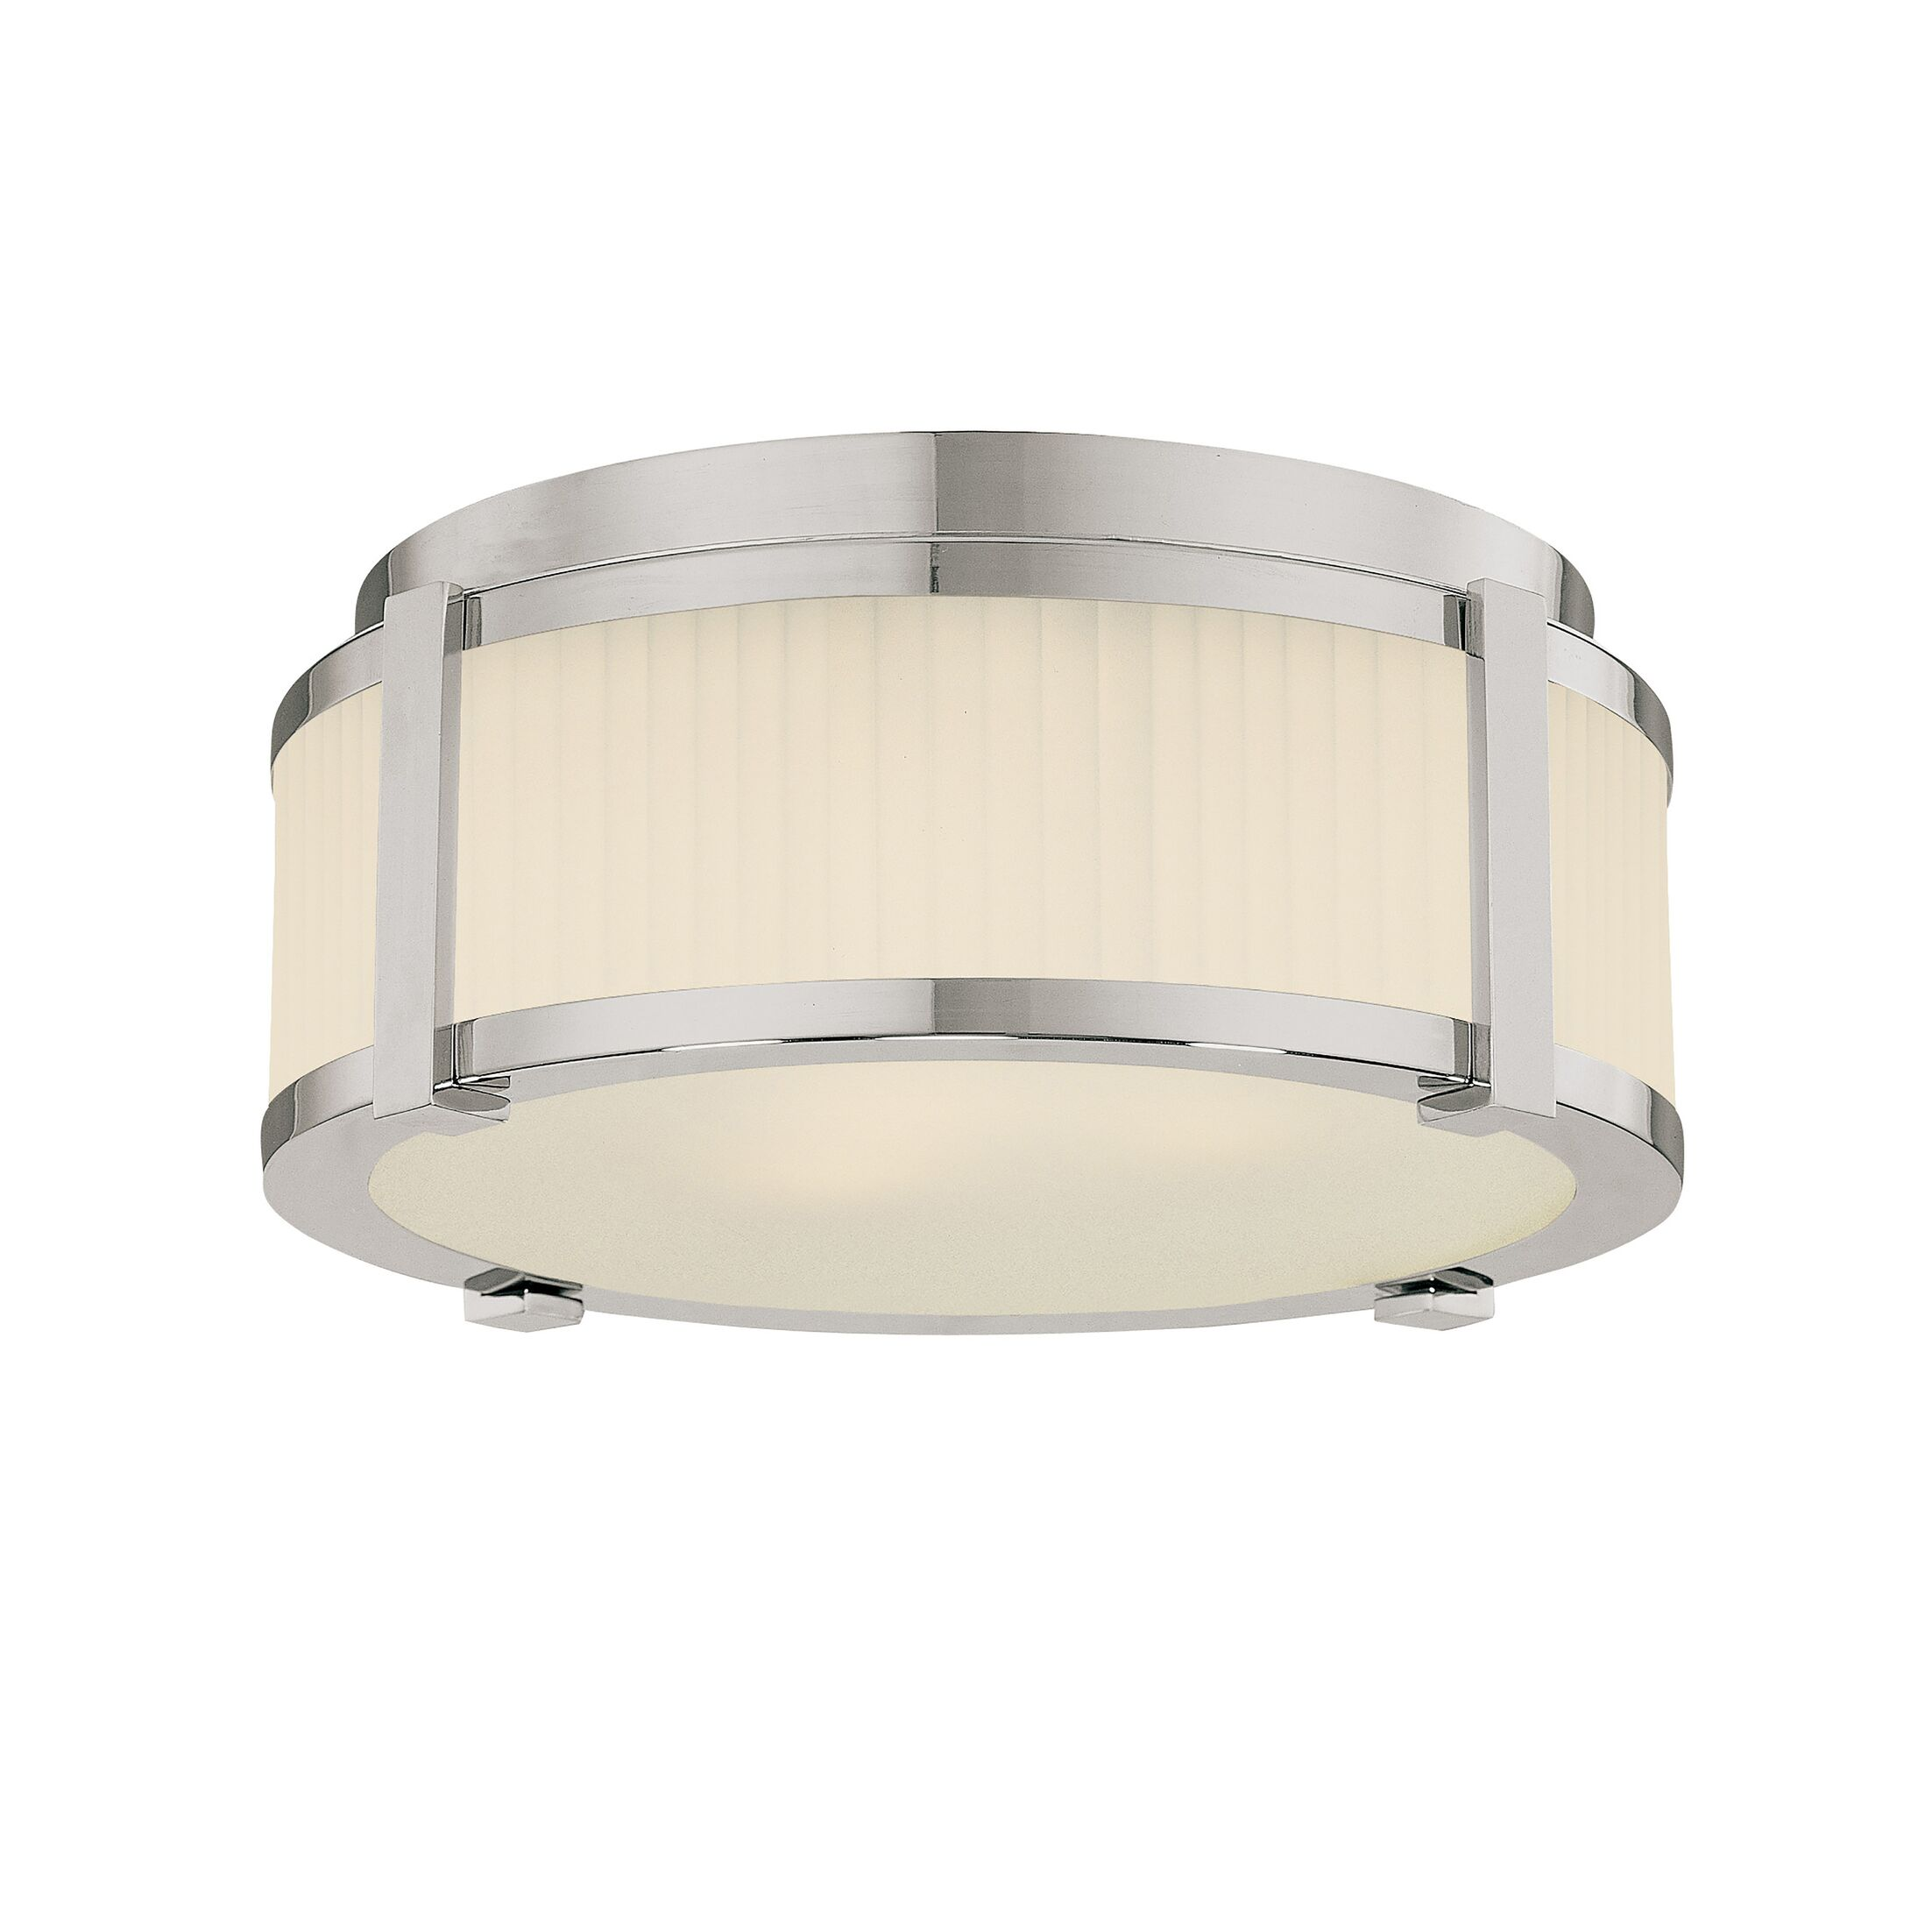 Roxy Flush Mount Finish / Size: Polished Nickel / 5.5